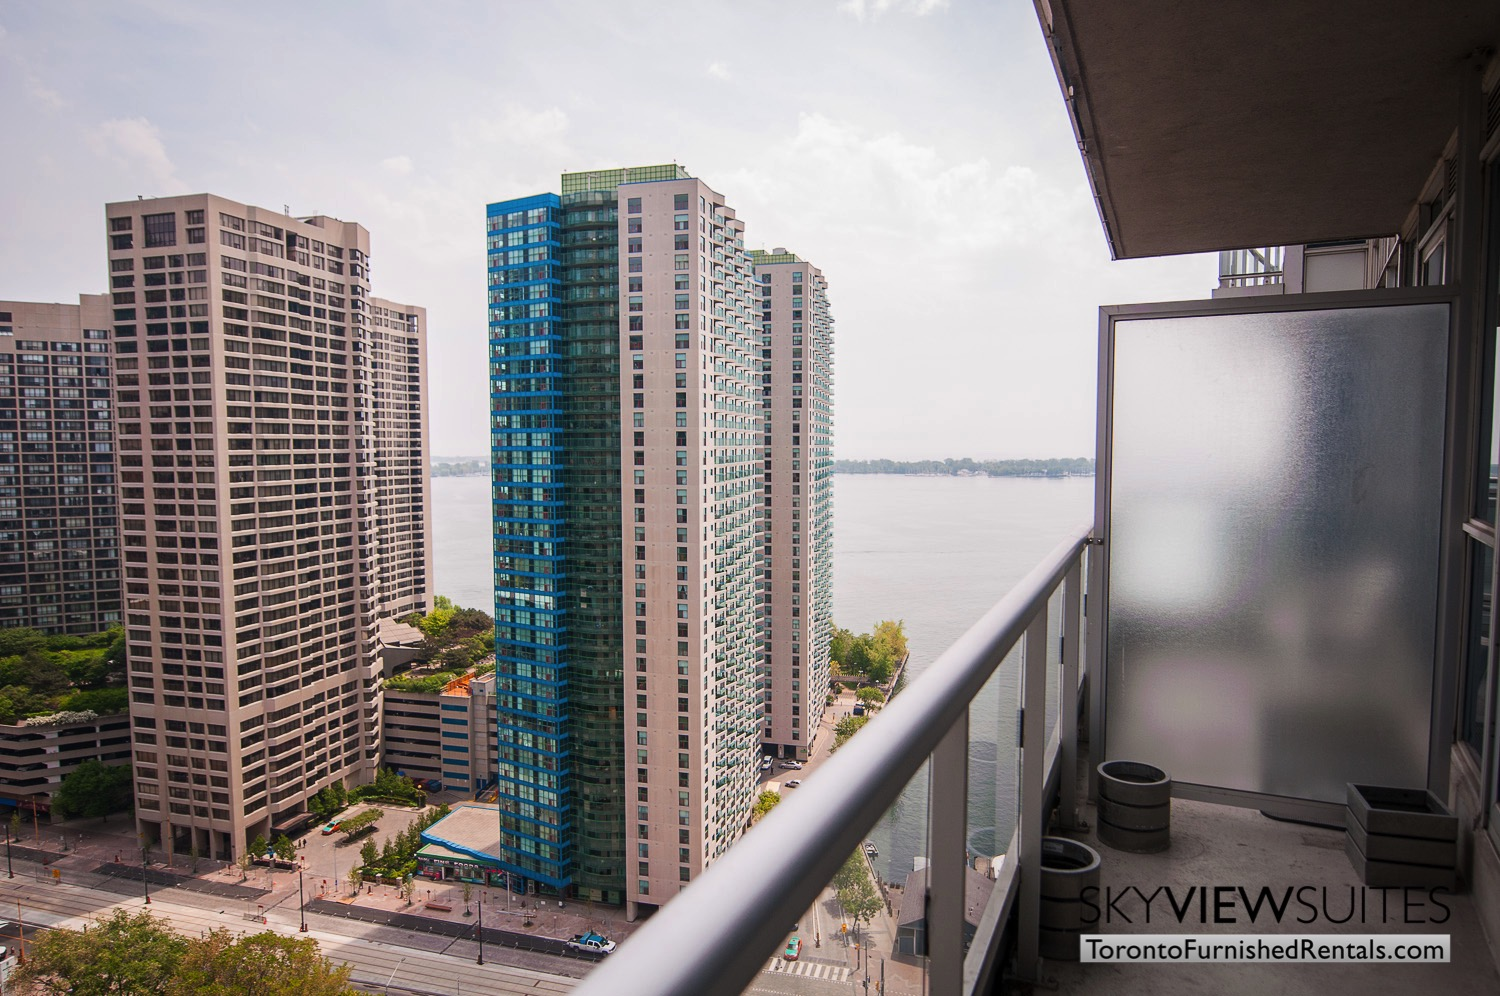 furnished rentals toronto waterfront balcony